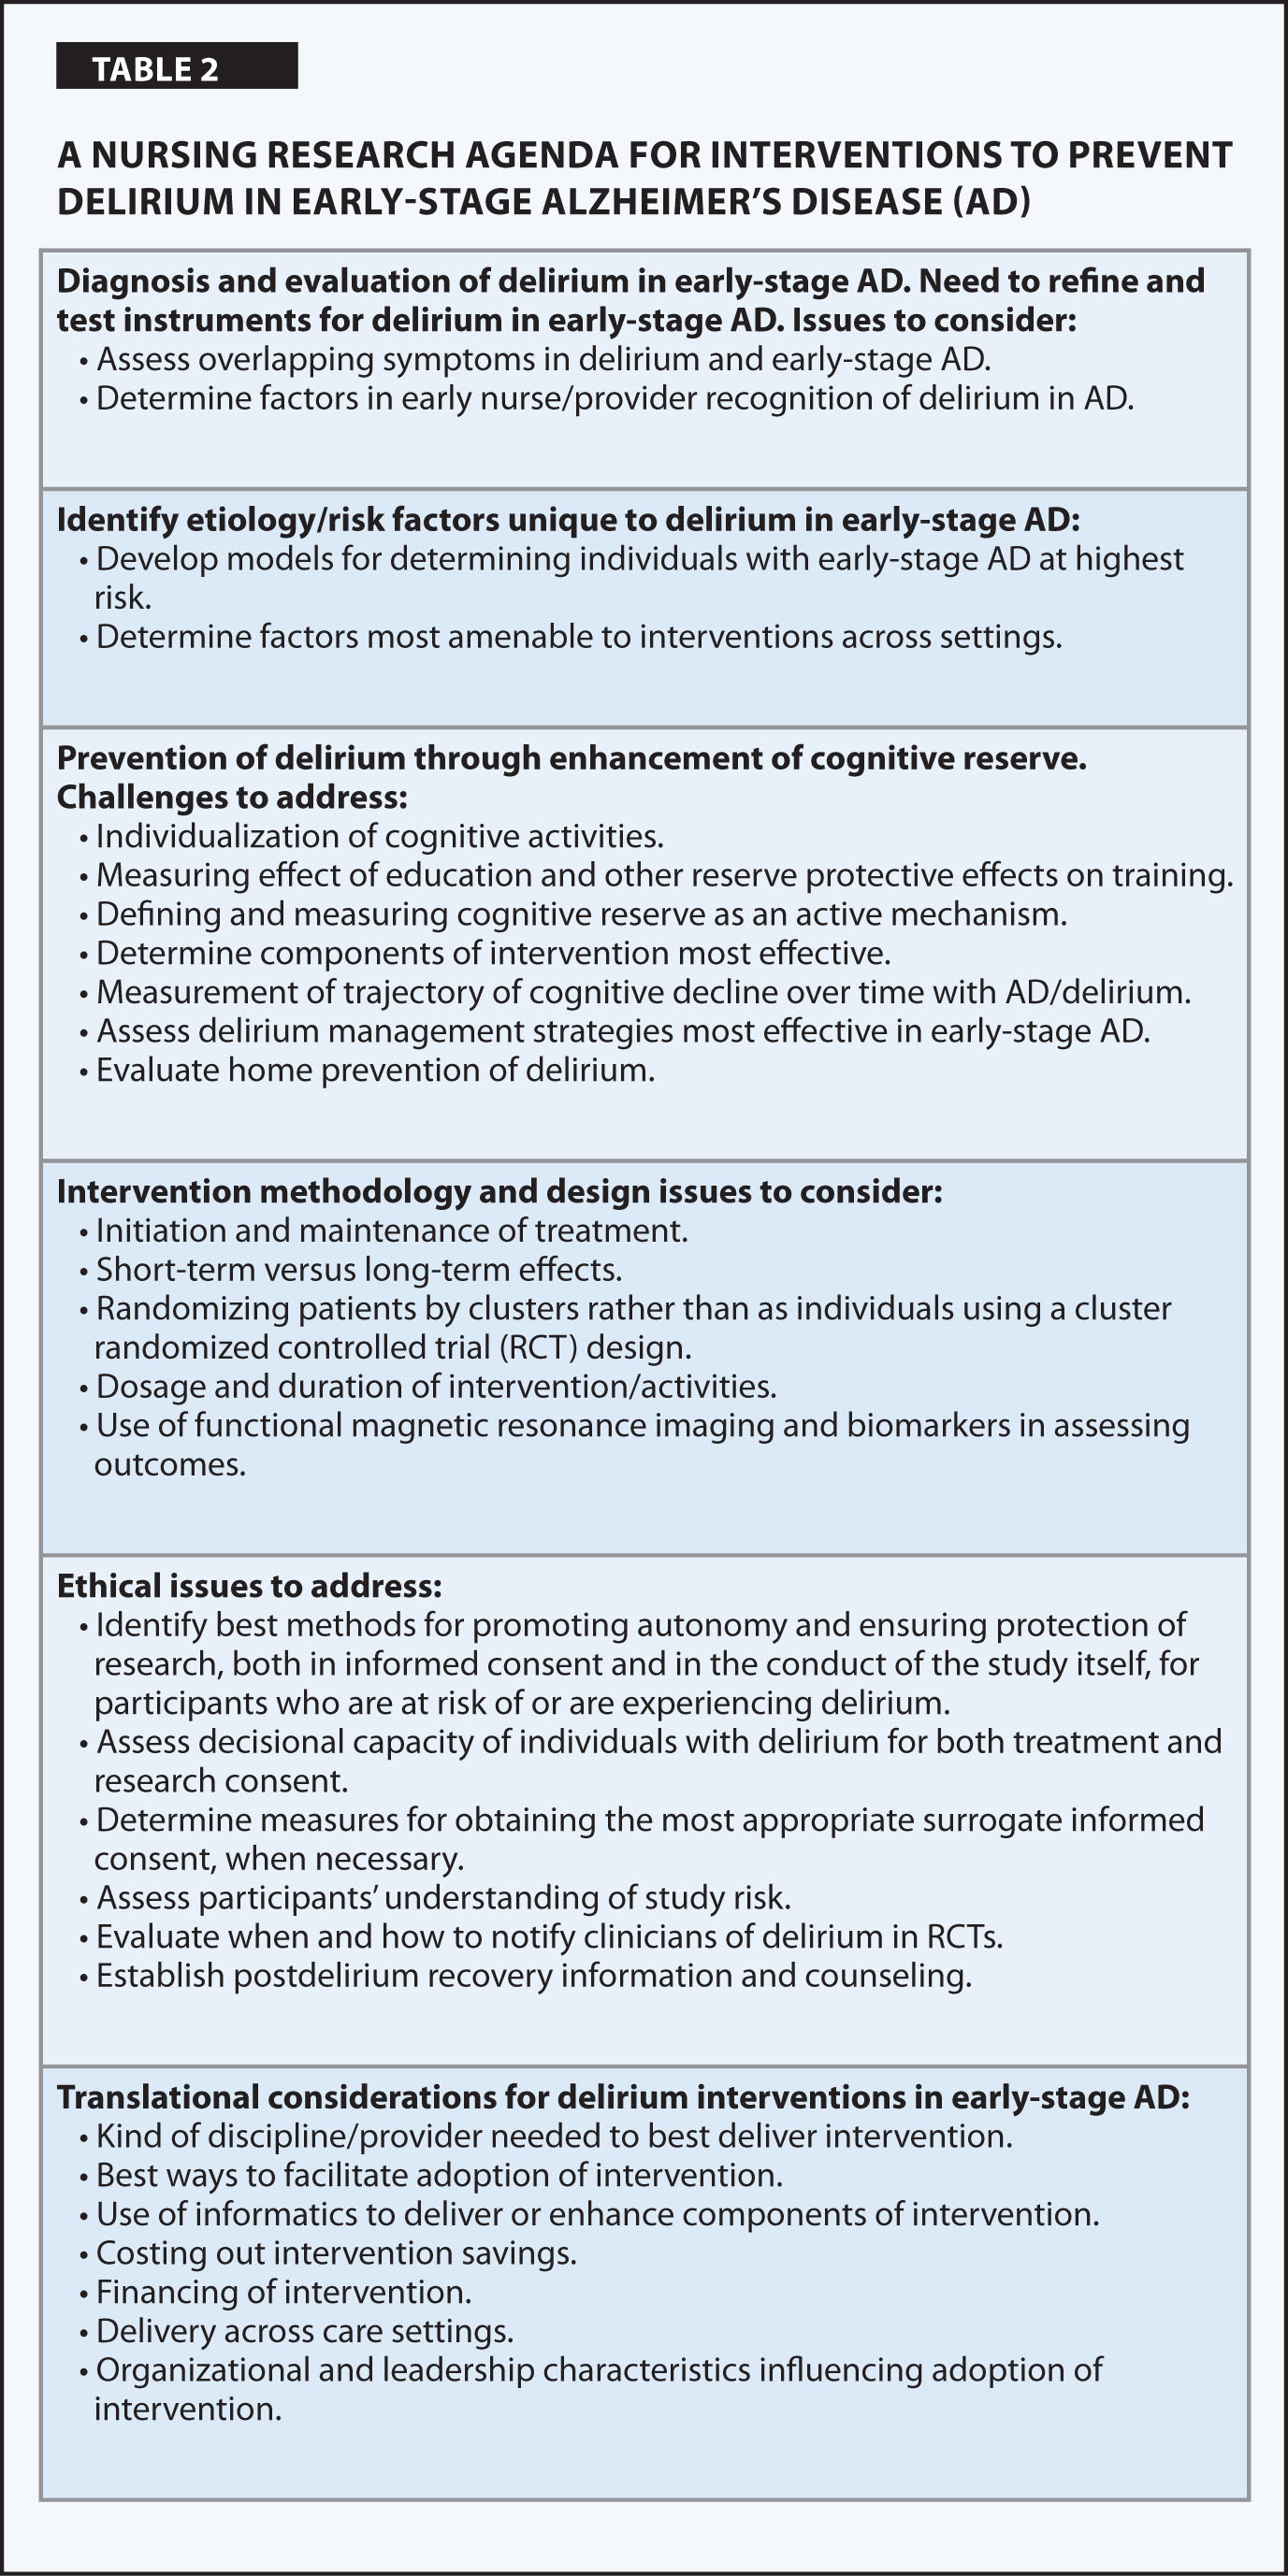 A Nursing Research Agenda for Interventions to Prevent Delirium in Early-Stage Alzheimer's Disease (AD)